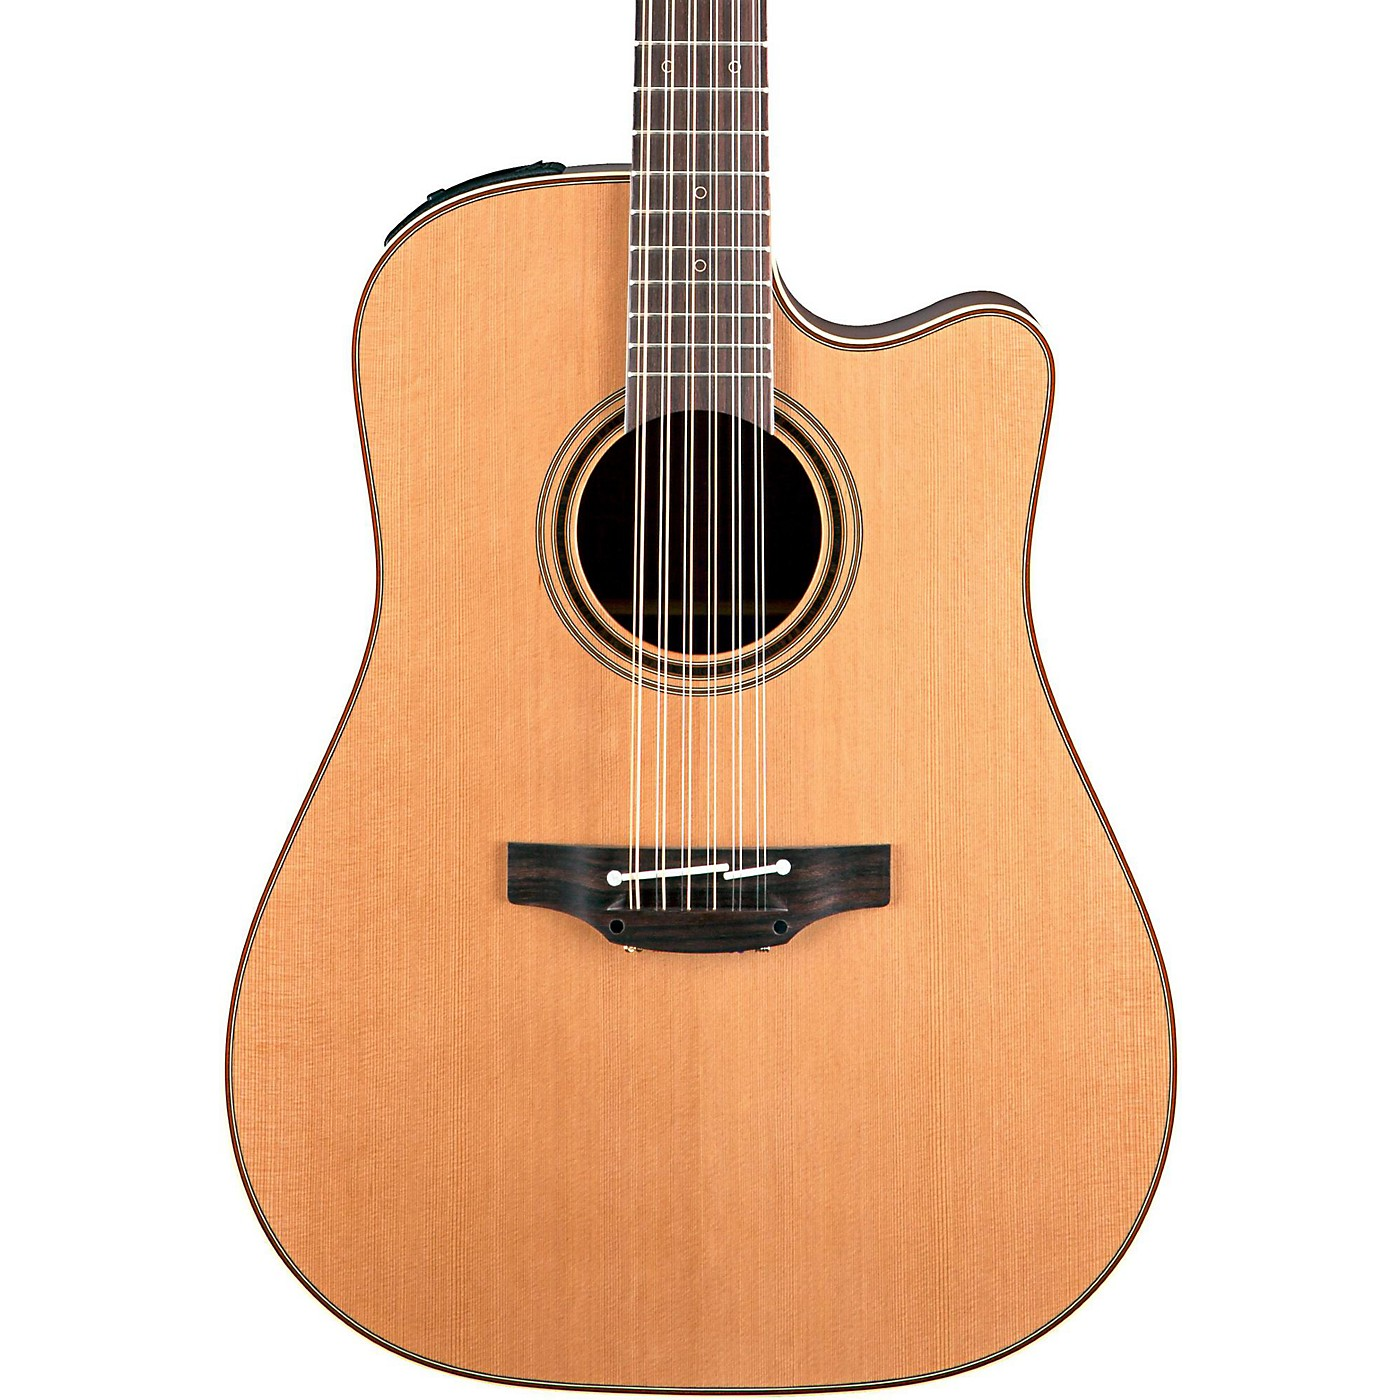 Takamine Pro Series 3 Dreadnought Cutaway 12-String Acoustic Electric Guitar thumbnail